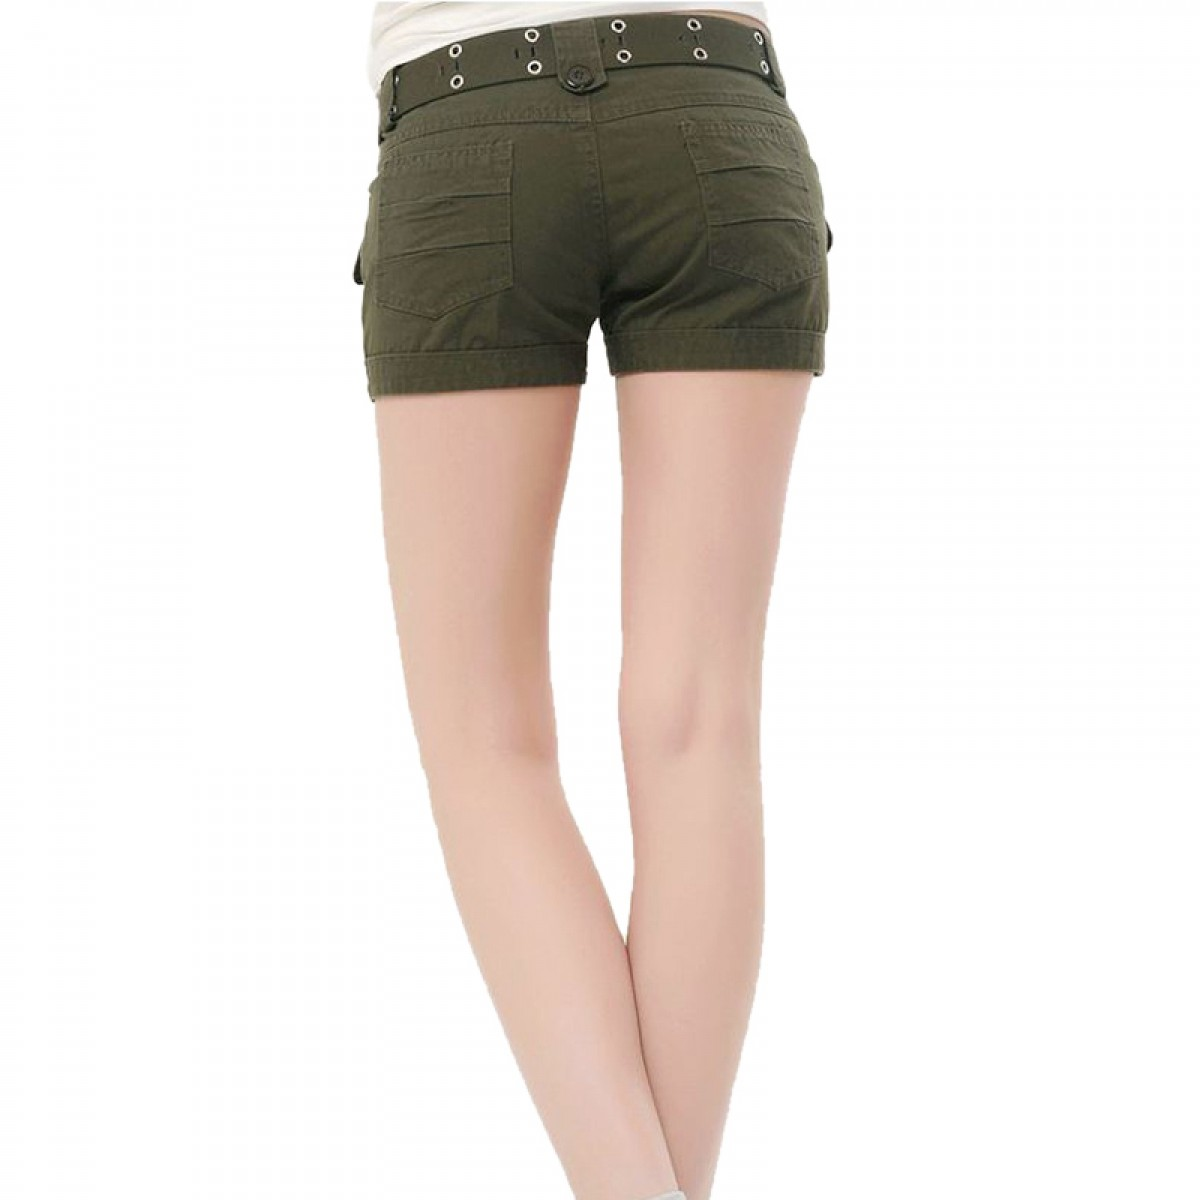 Khaki Cargo Shorts For Women | www.pixshark.com - Images Galleries With A Bite!